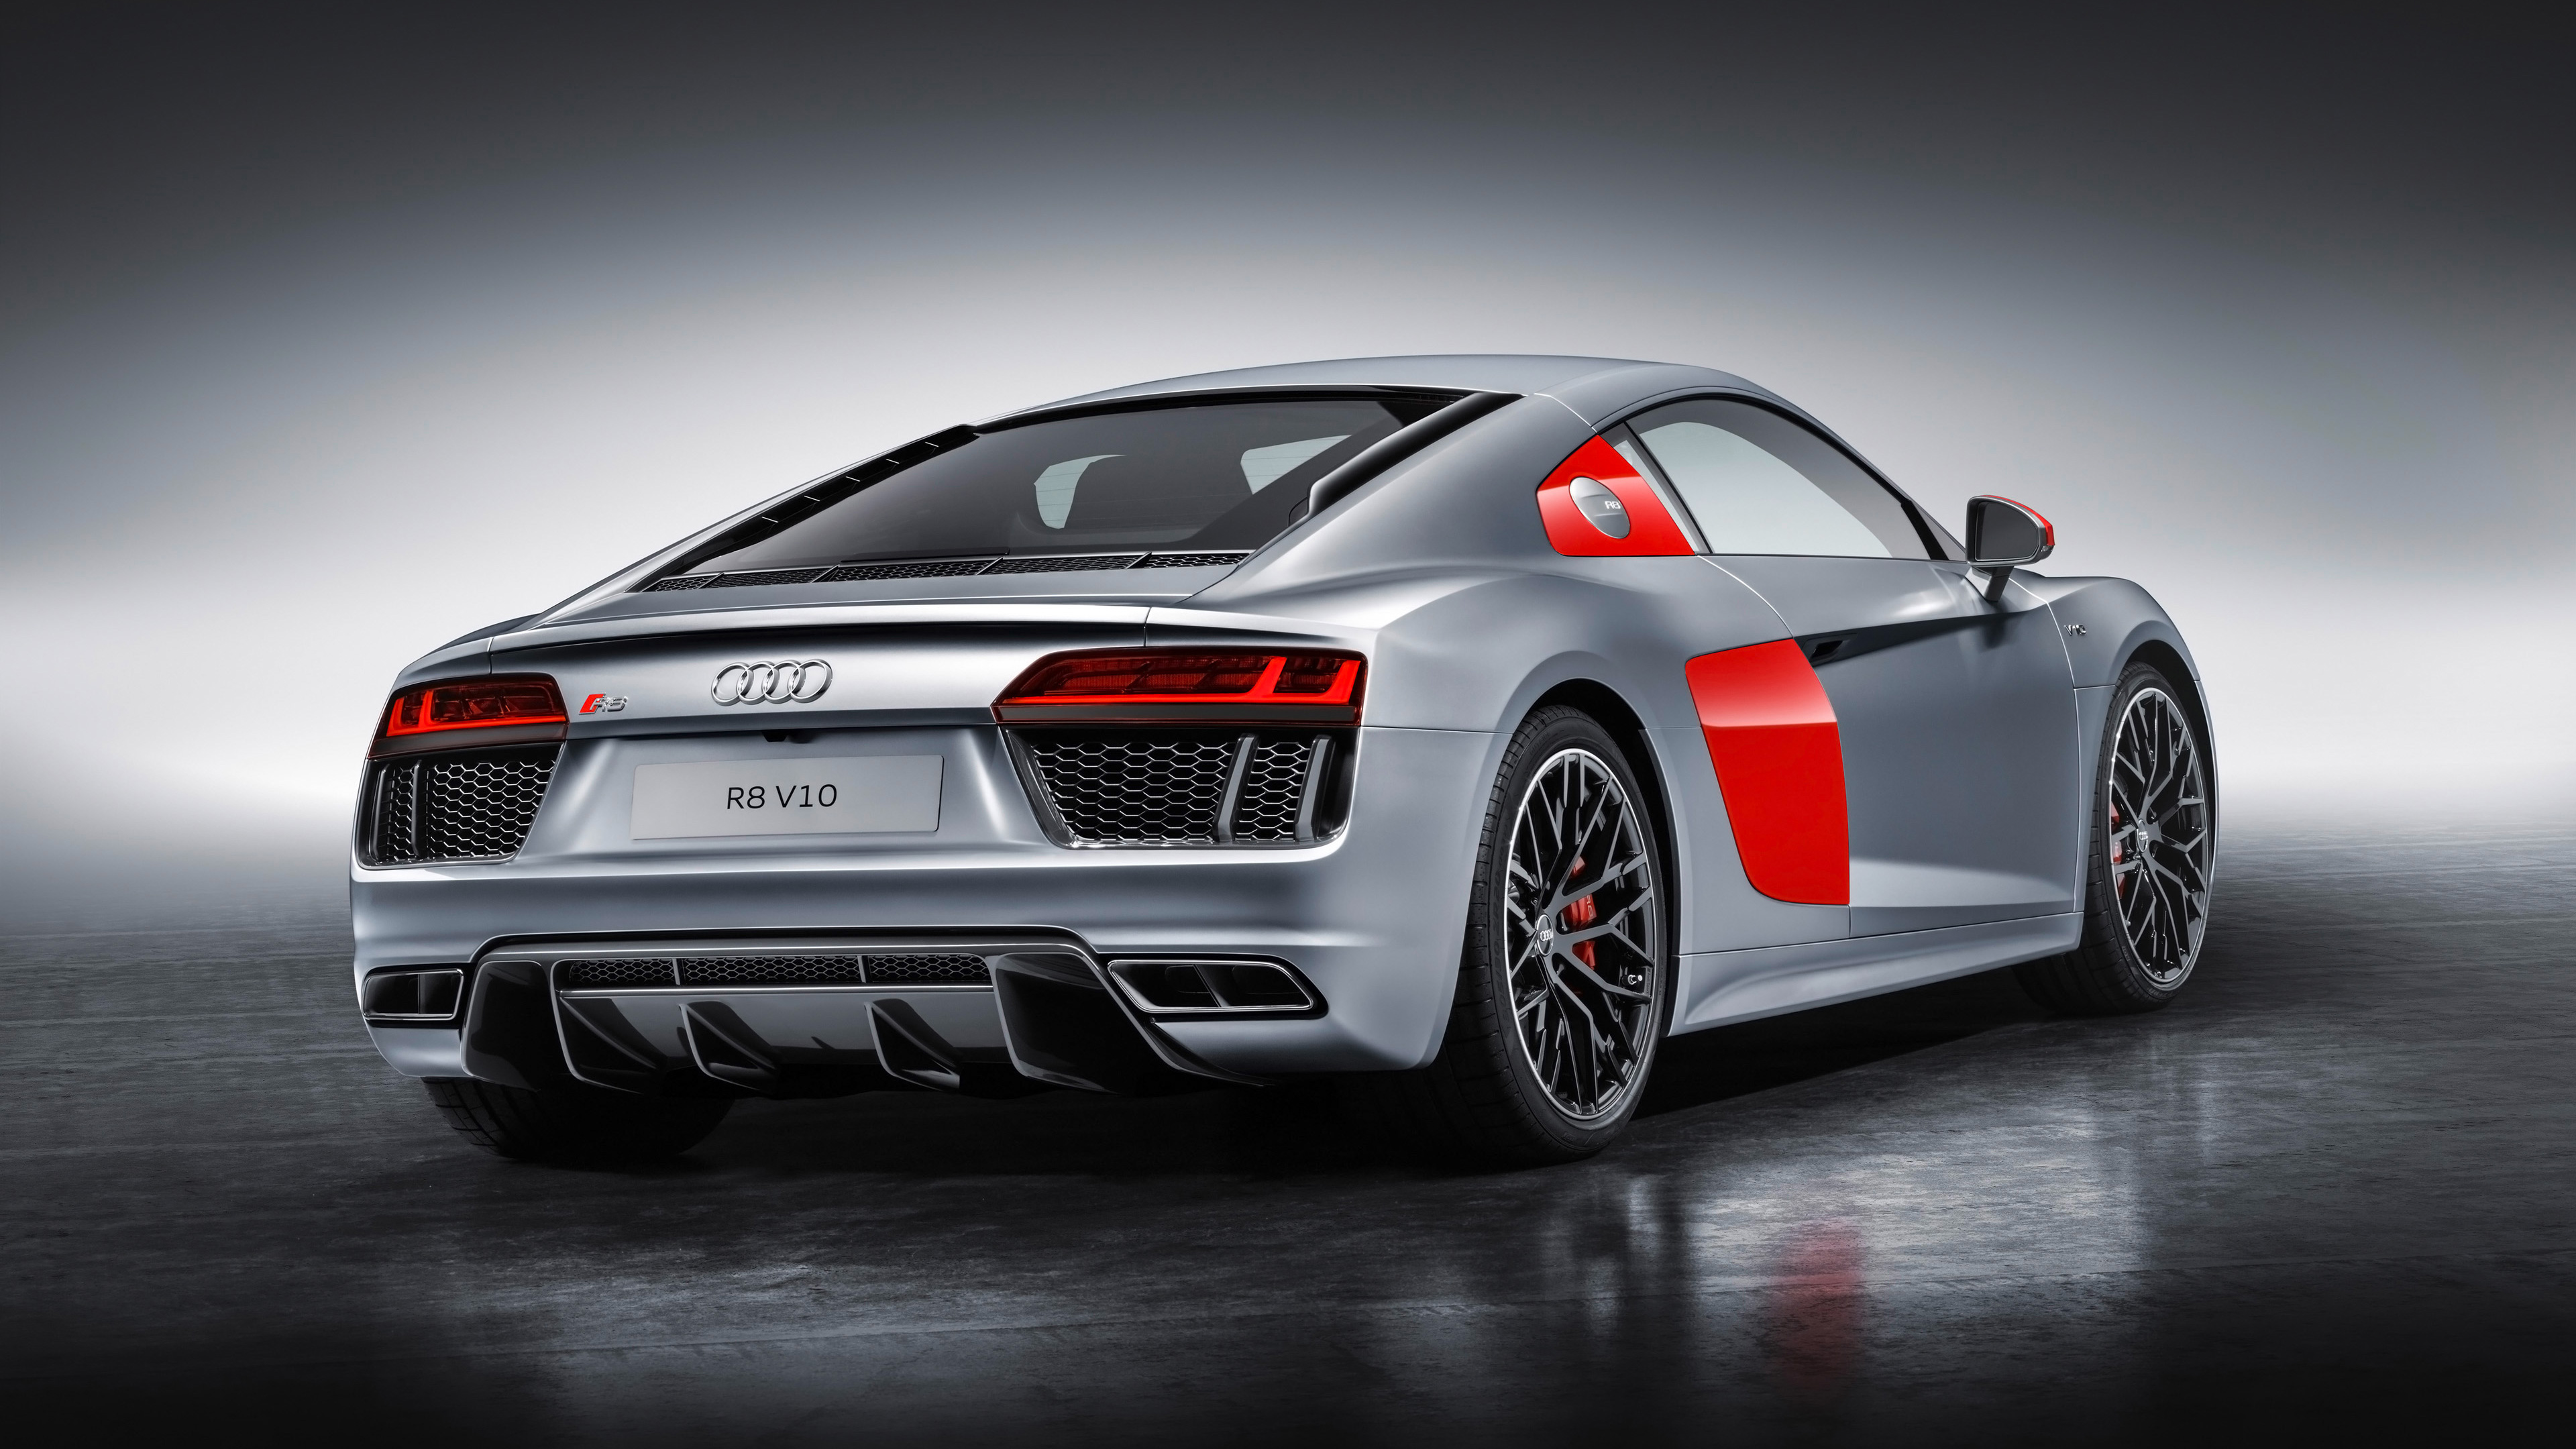 2018 audi r8 coupe sport edition 2 wallpaper hd car wallpapers id 8164. Black Bedroom Furniture Sets. Home Design Ideas